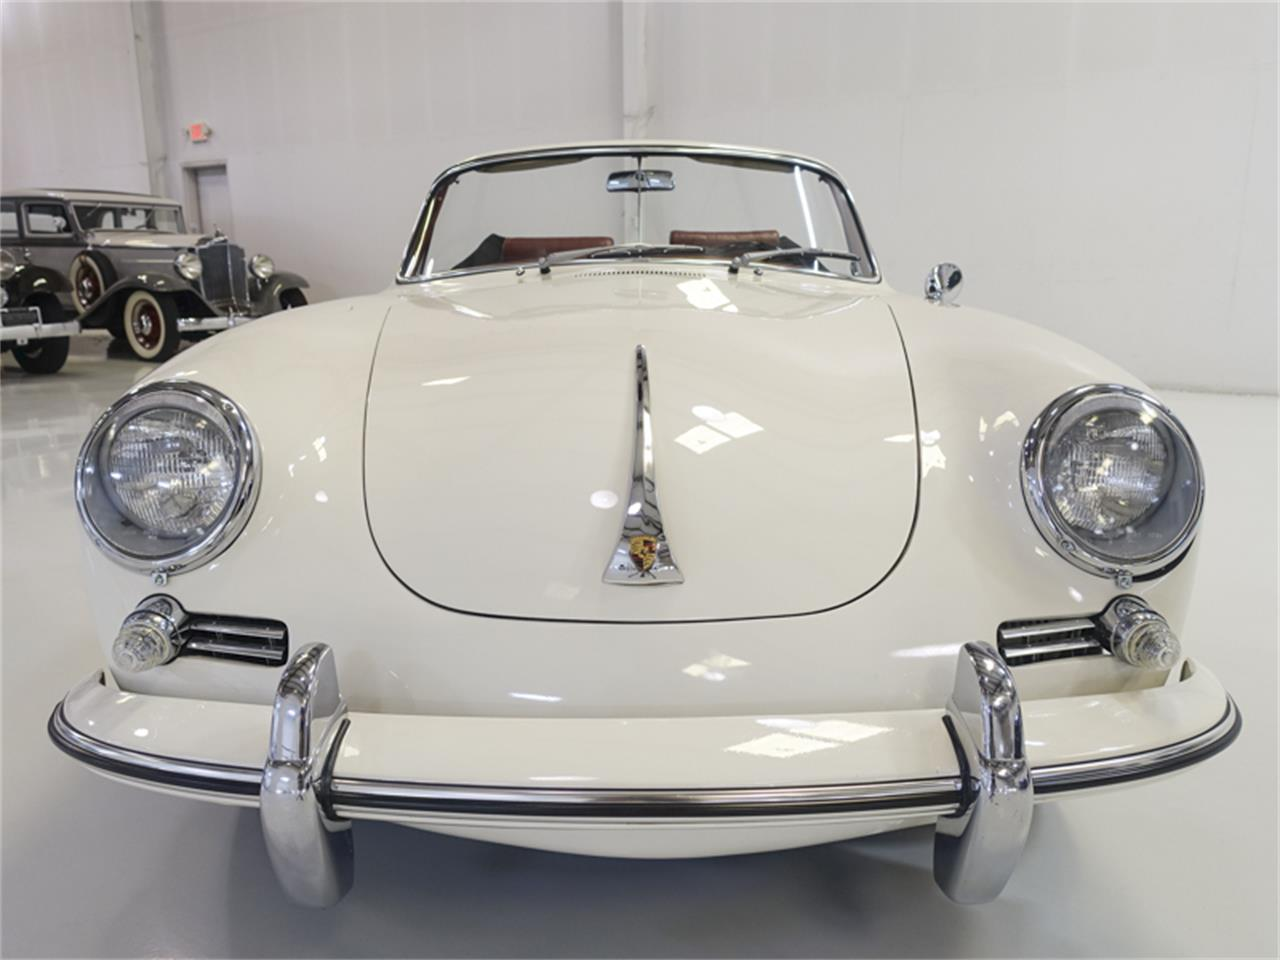 1965 Porsche 356C for sale in St. Louis, MO – photo 4